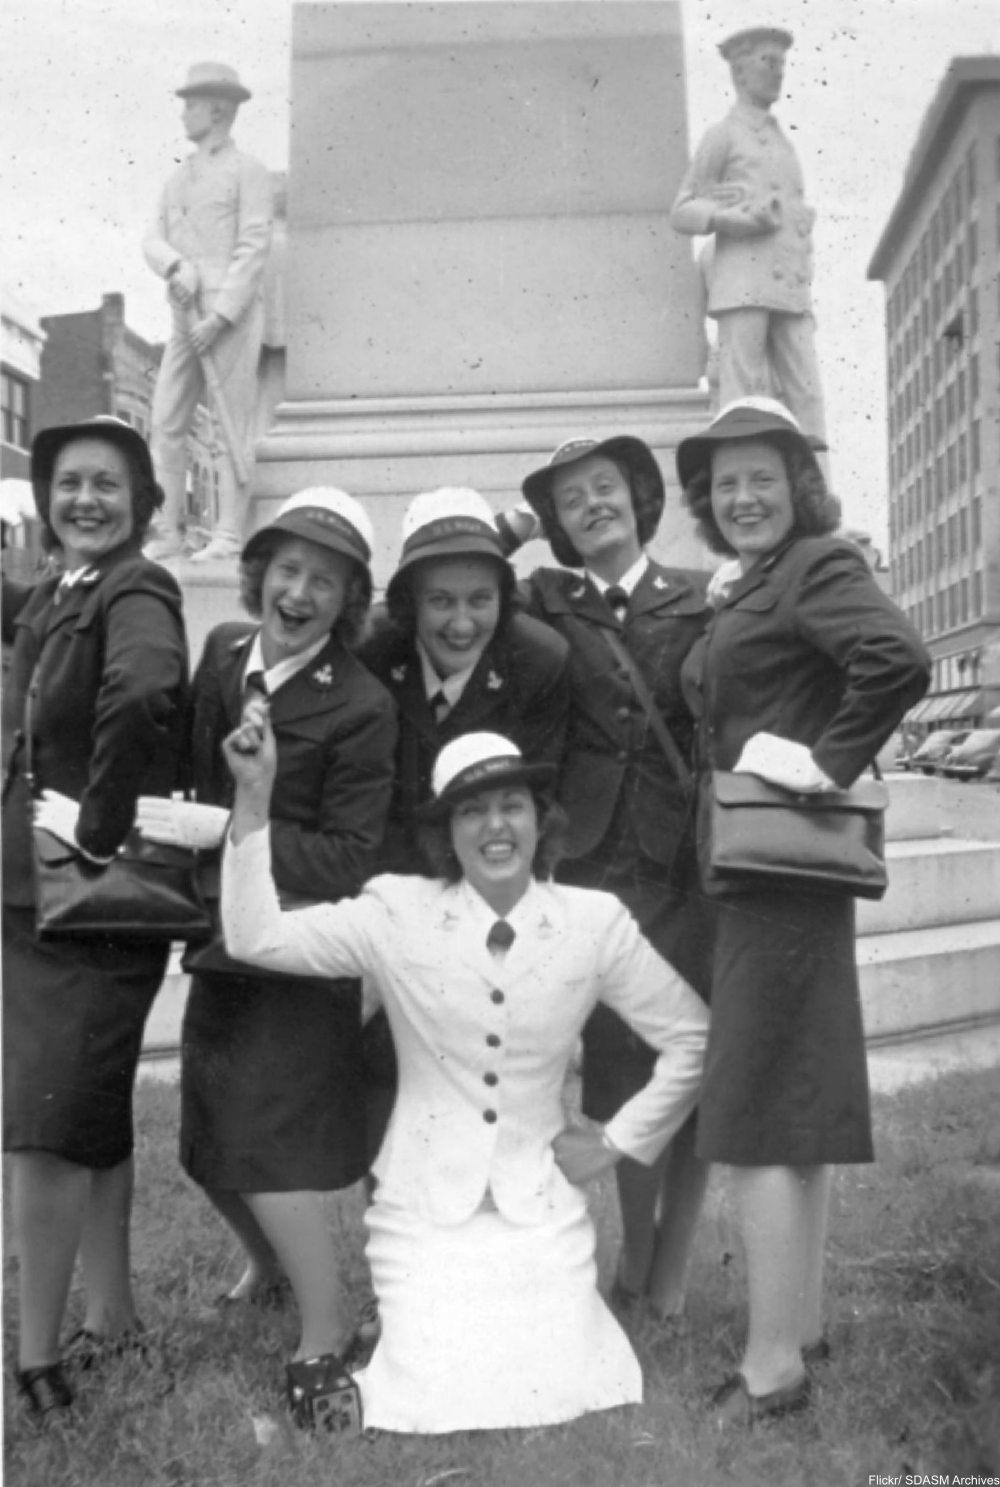 Waves, Farmerettes, and Munitions Workers from the 1940s in Action